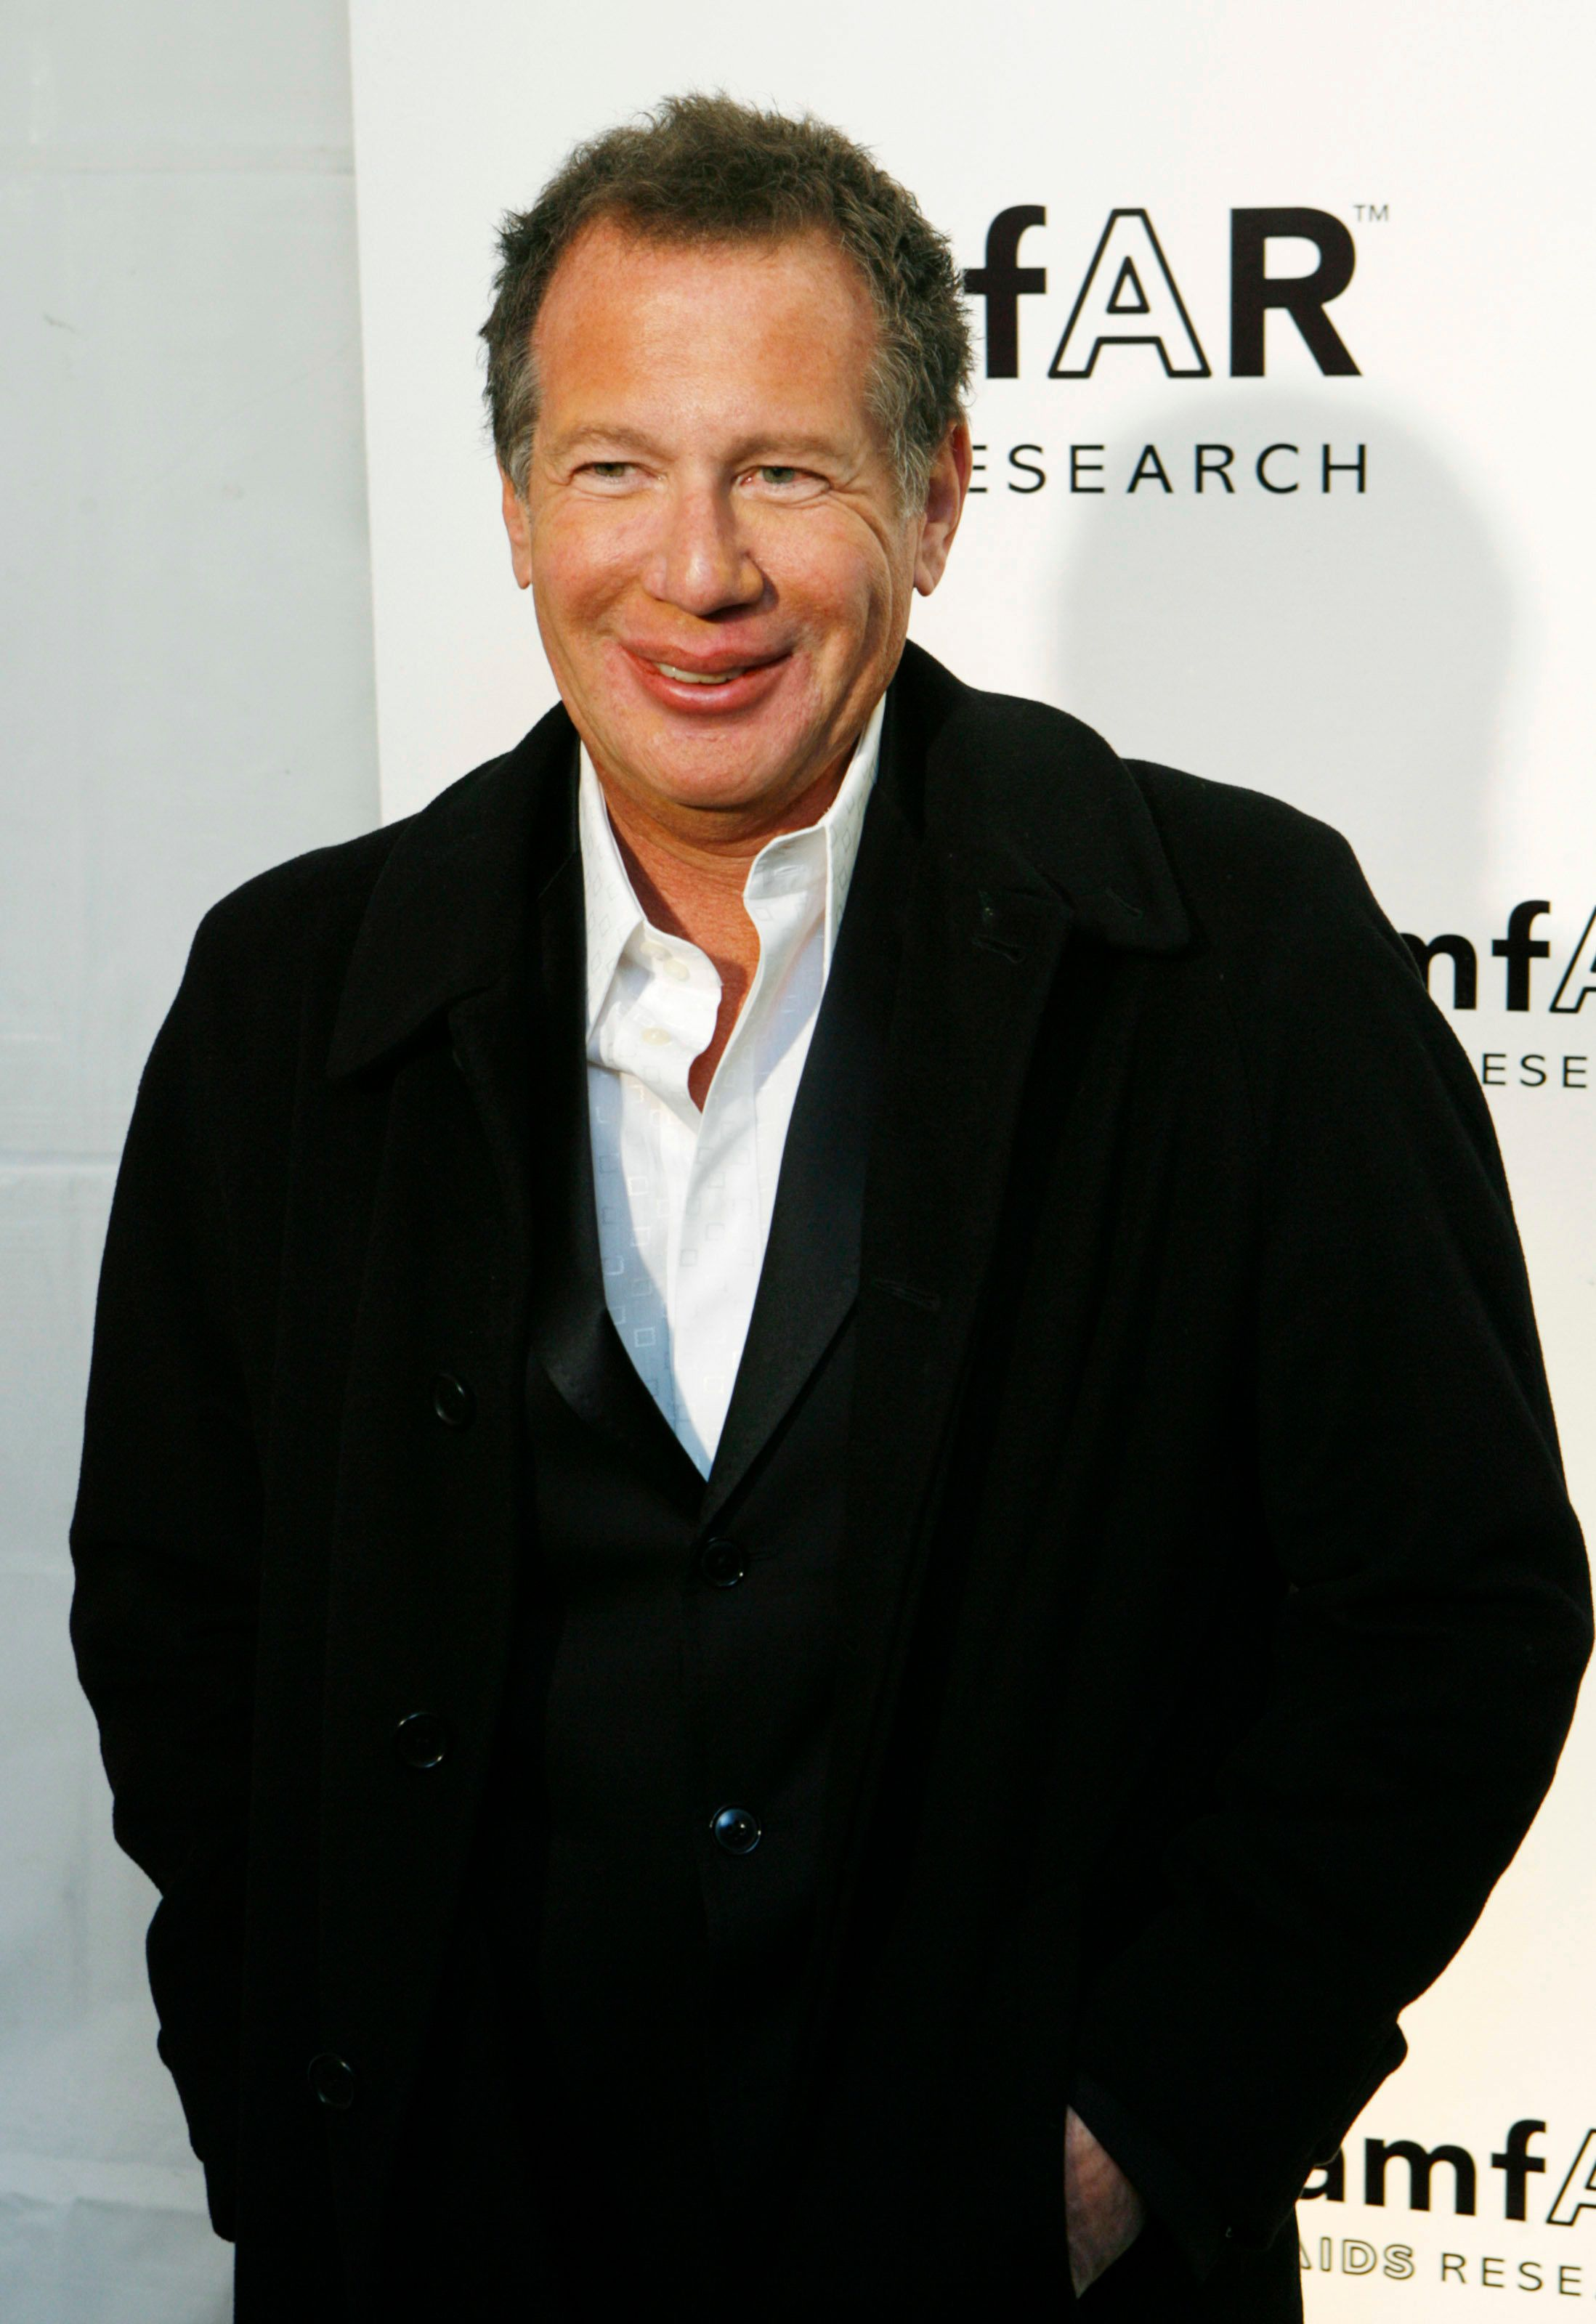 Actor Garry Shandling arrives to attend the amfAR, The Foundation for AIDS Research, gala benefit in New York January 31, 2007. REUTERS/Lucas Jackson  (UNITED STATES)